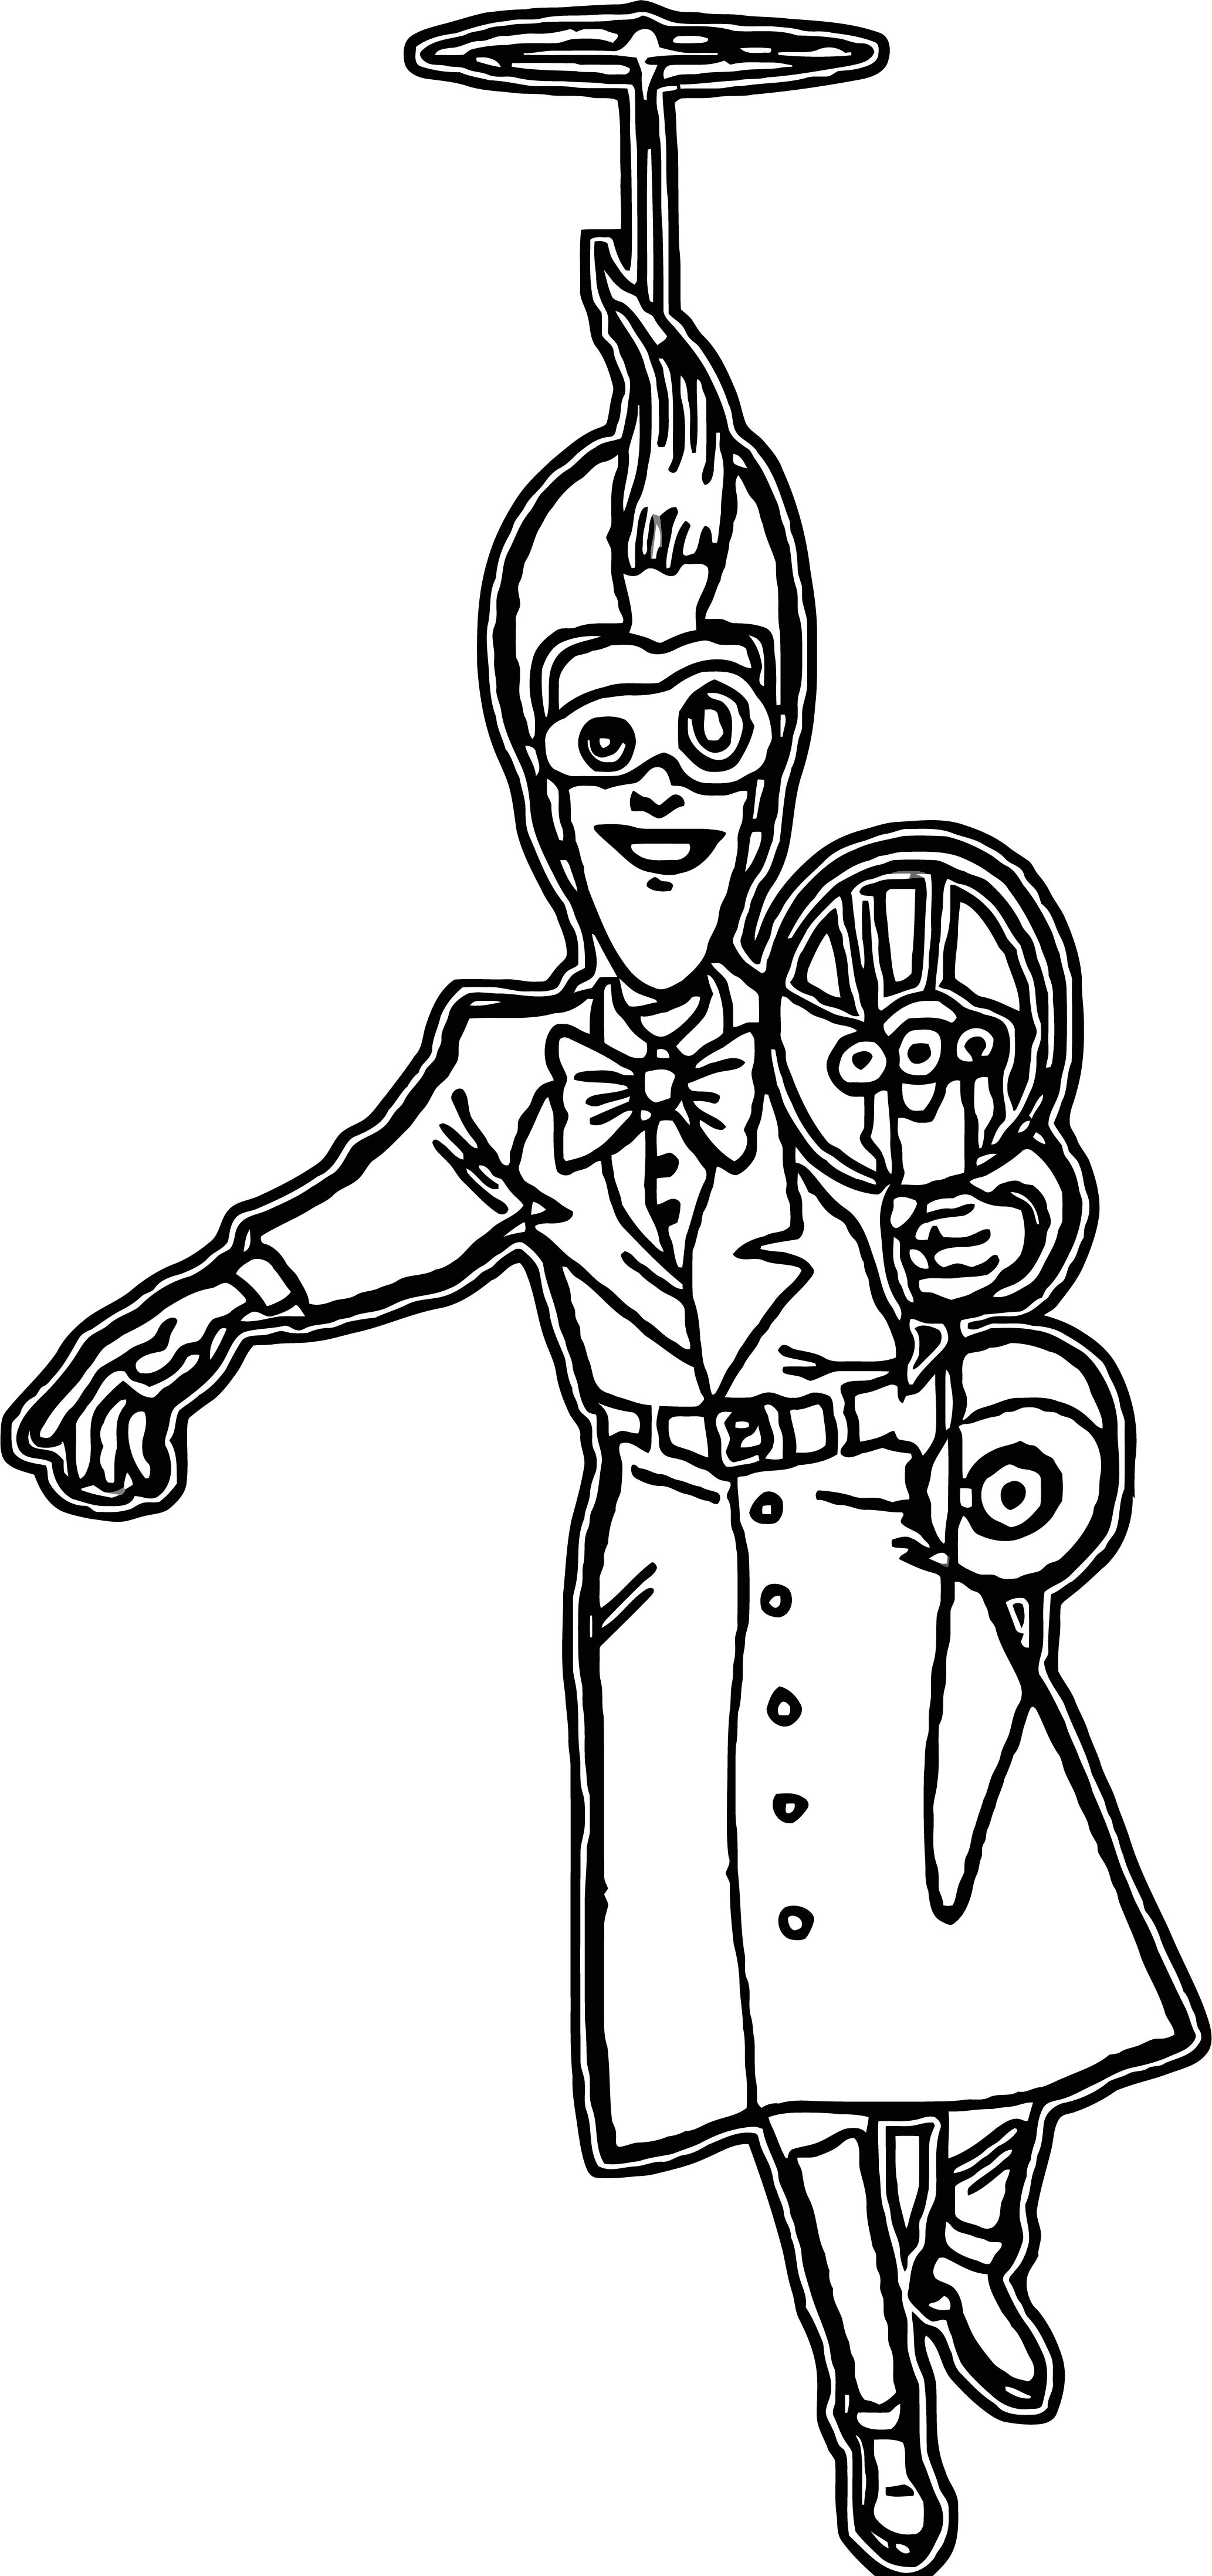 Meet The Robinsons Coloring Page 26